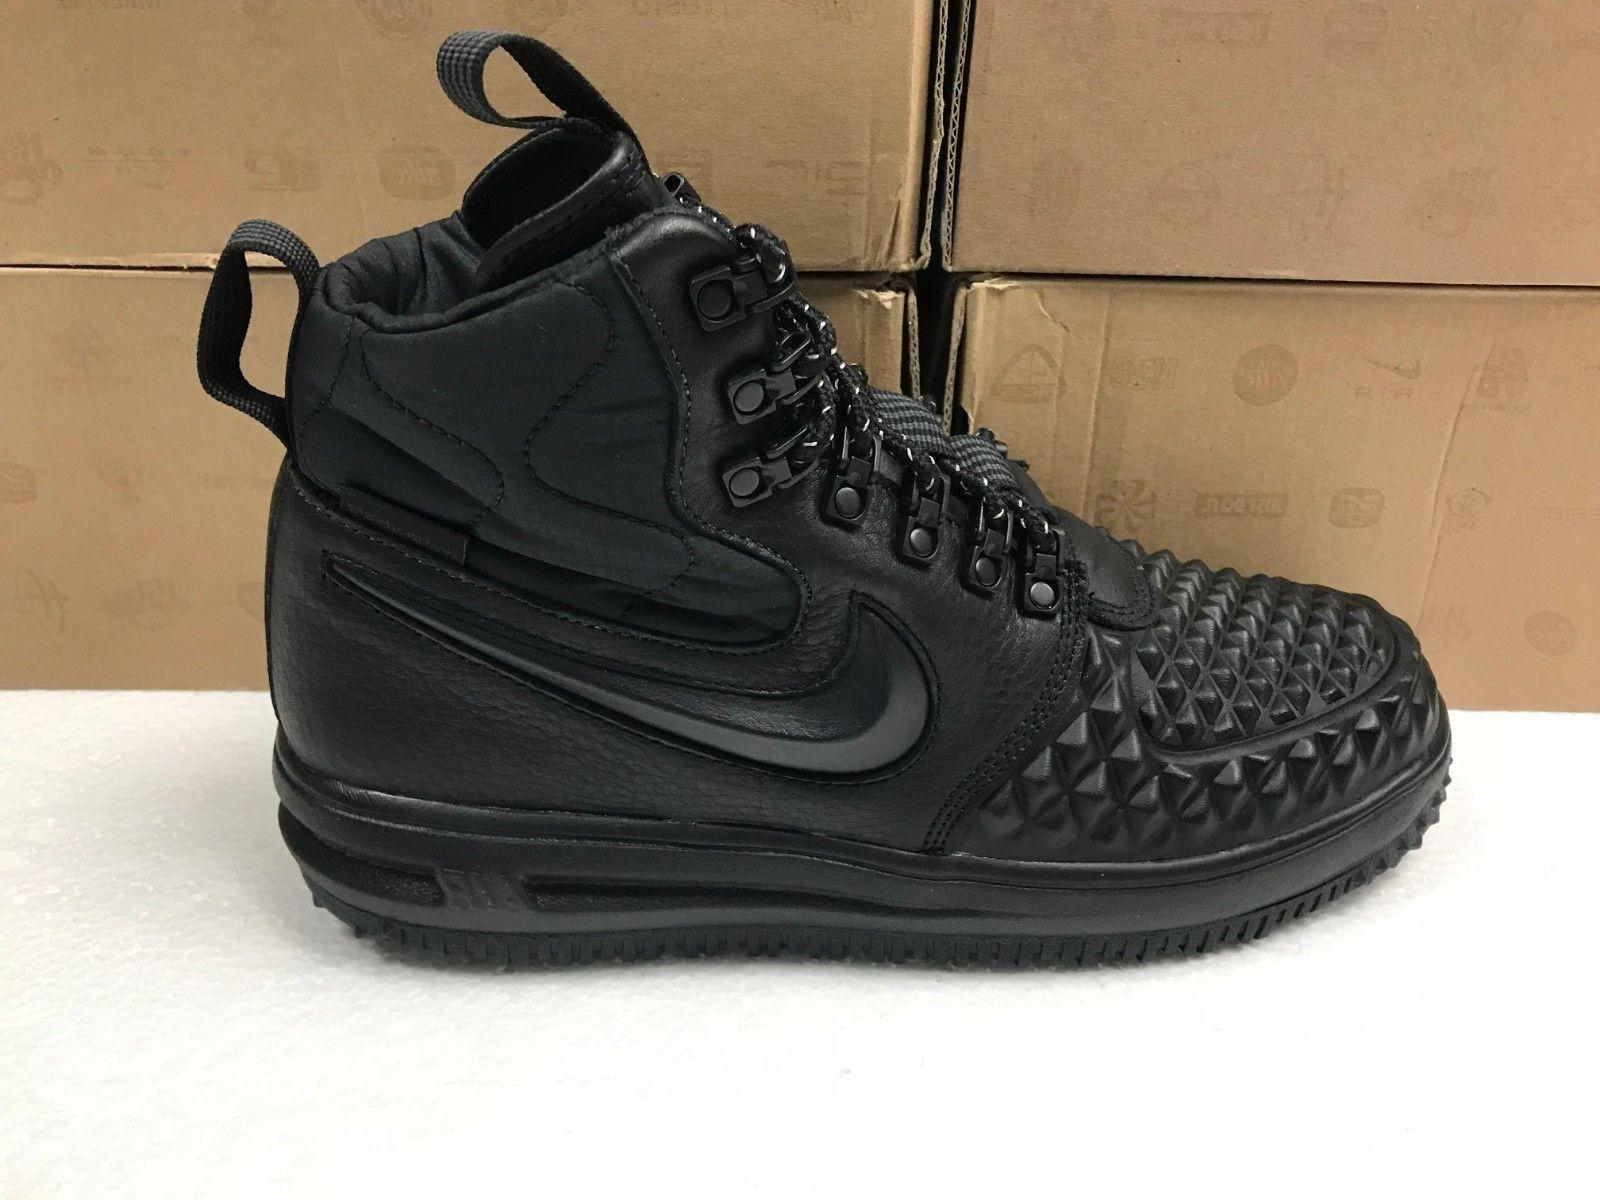 NEW MENS LF1 LUNAR FORCE BOOTS 916682 002-MULTIPLE SIZES